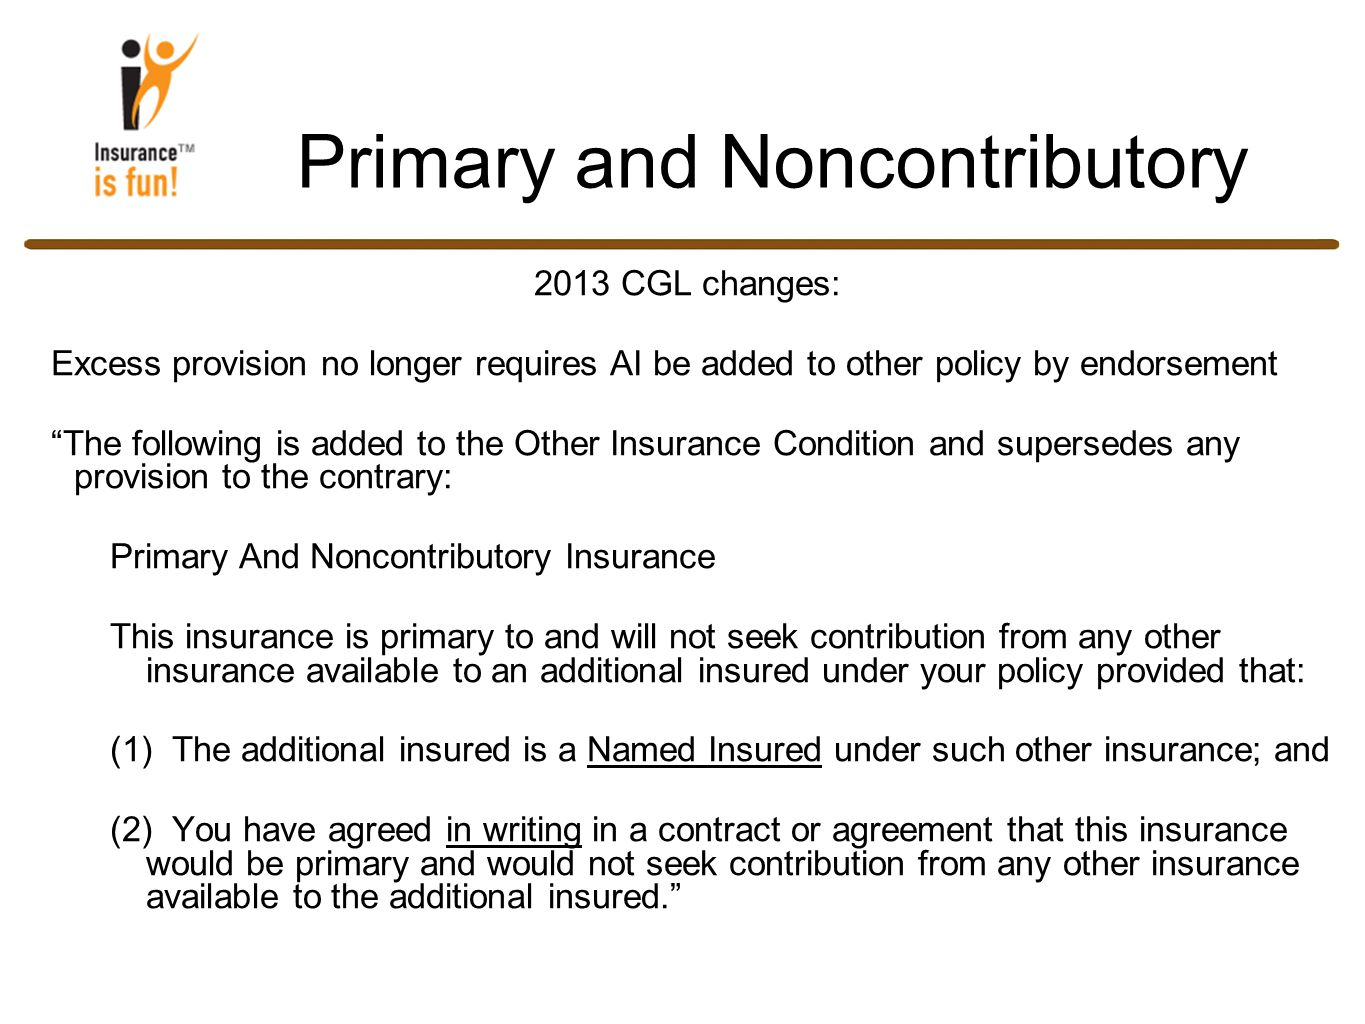 Primary and Noncontributory 2013 CGL changes: Excess provision no longer requires AI be added to other policy by endorsement The following is added to the Other Insurance Condition and supersedes any provision to the contrary: Primary And Noncontributory Insurance This insurance is primary to and will not seek contribution from any other insurance available to an additional insured under your policy provided that: (1) The additional insured is a Named Insured under such other insurance; and (2) You have agreed in writing in a contract or agreement that this insurance would be primary and would not seek contribution from any other insurance available to the additional insured.